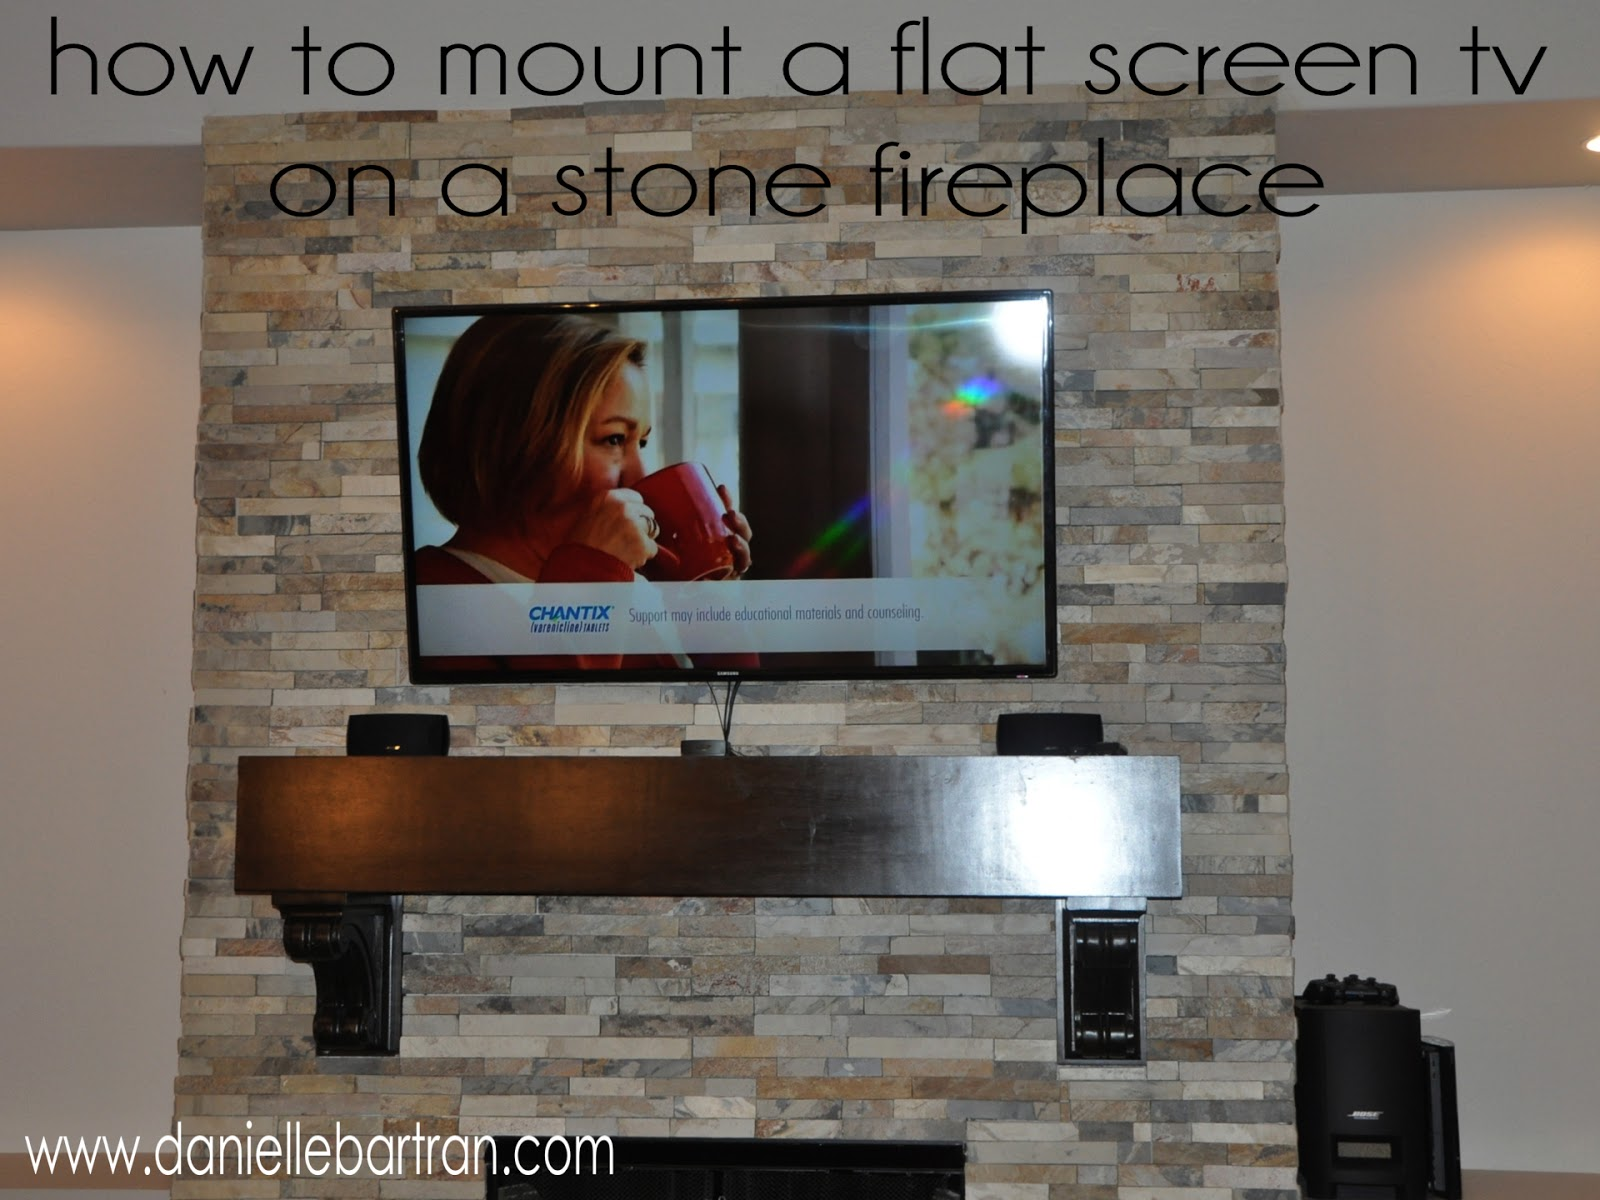 made how to mount a flat screen tv on a stone fireplace diy. Black Bedroom Furniture Sets. Home Design Ideas